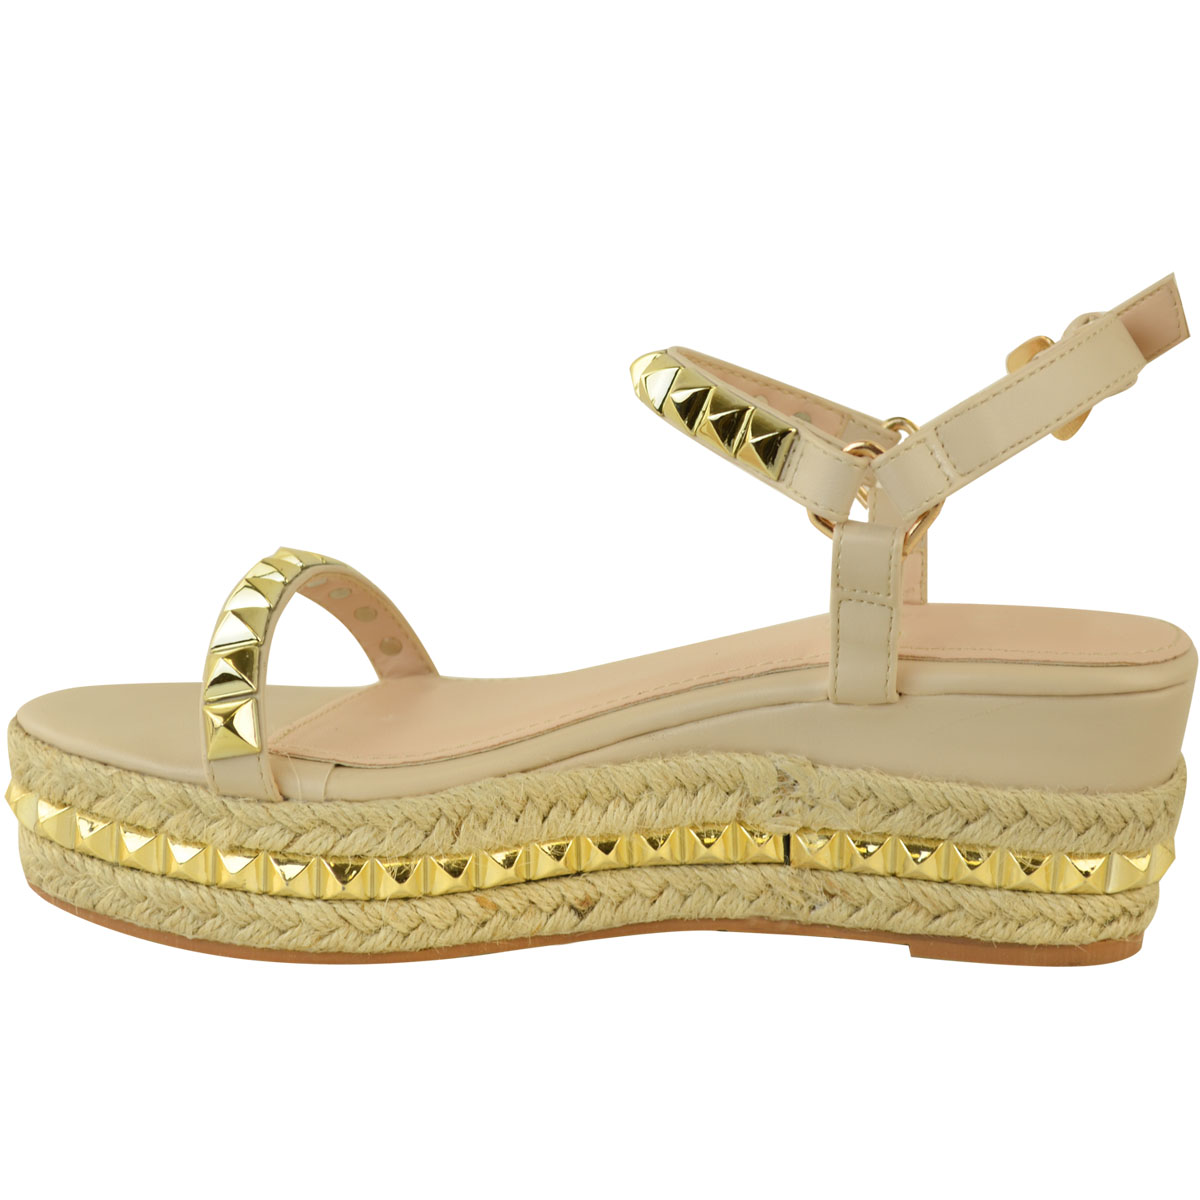 Ladies-Womens-Studded-Low-Wedge-Espadrille-Sandals-Platform-Rose-Gold-Shoes-Size thumbnail 20